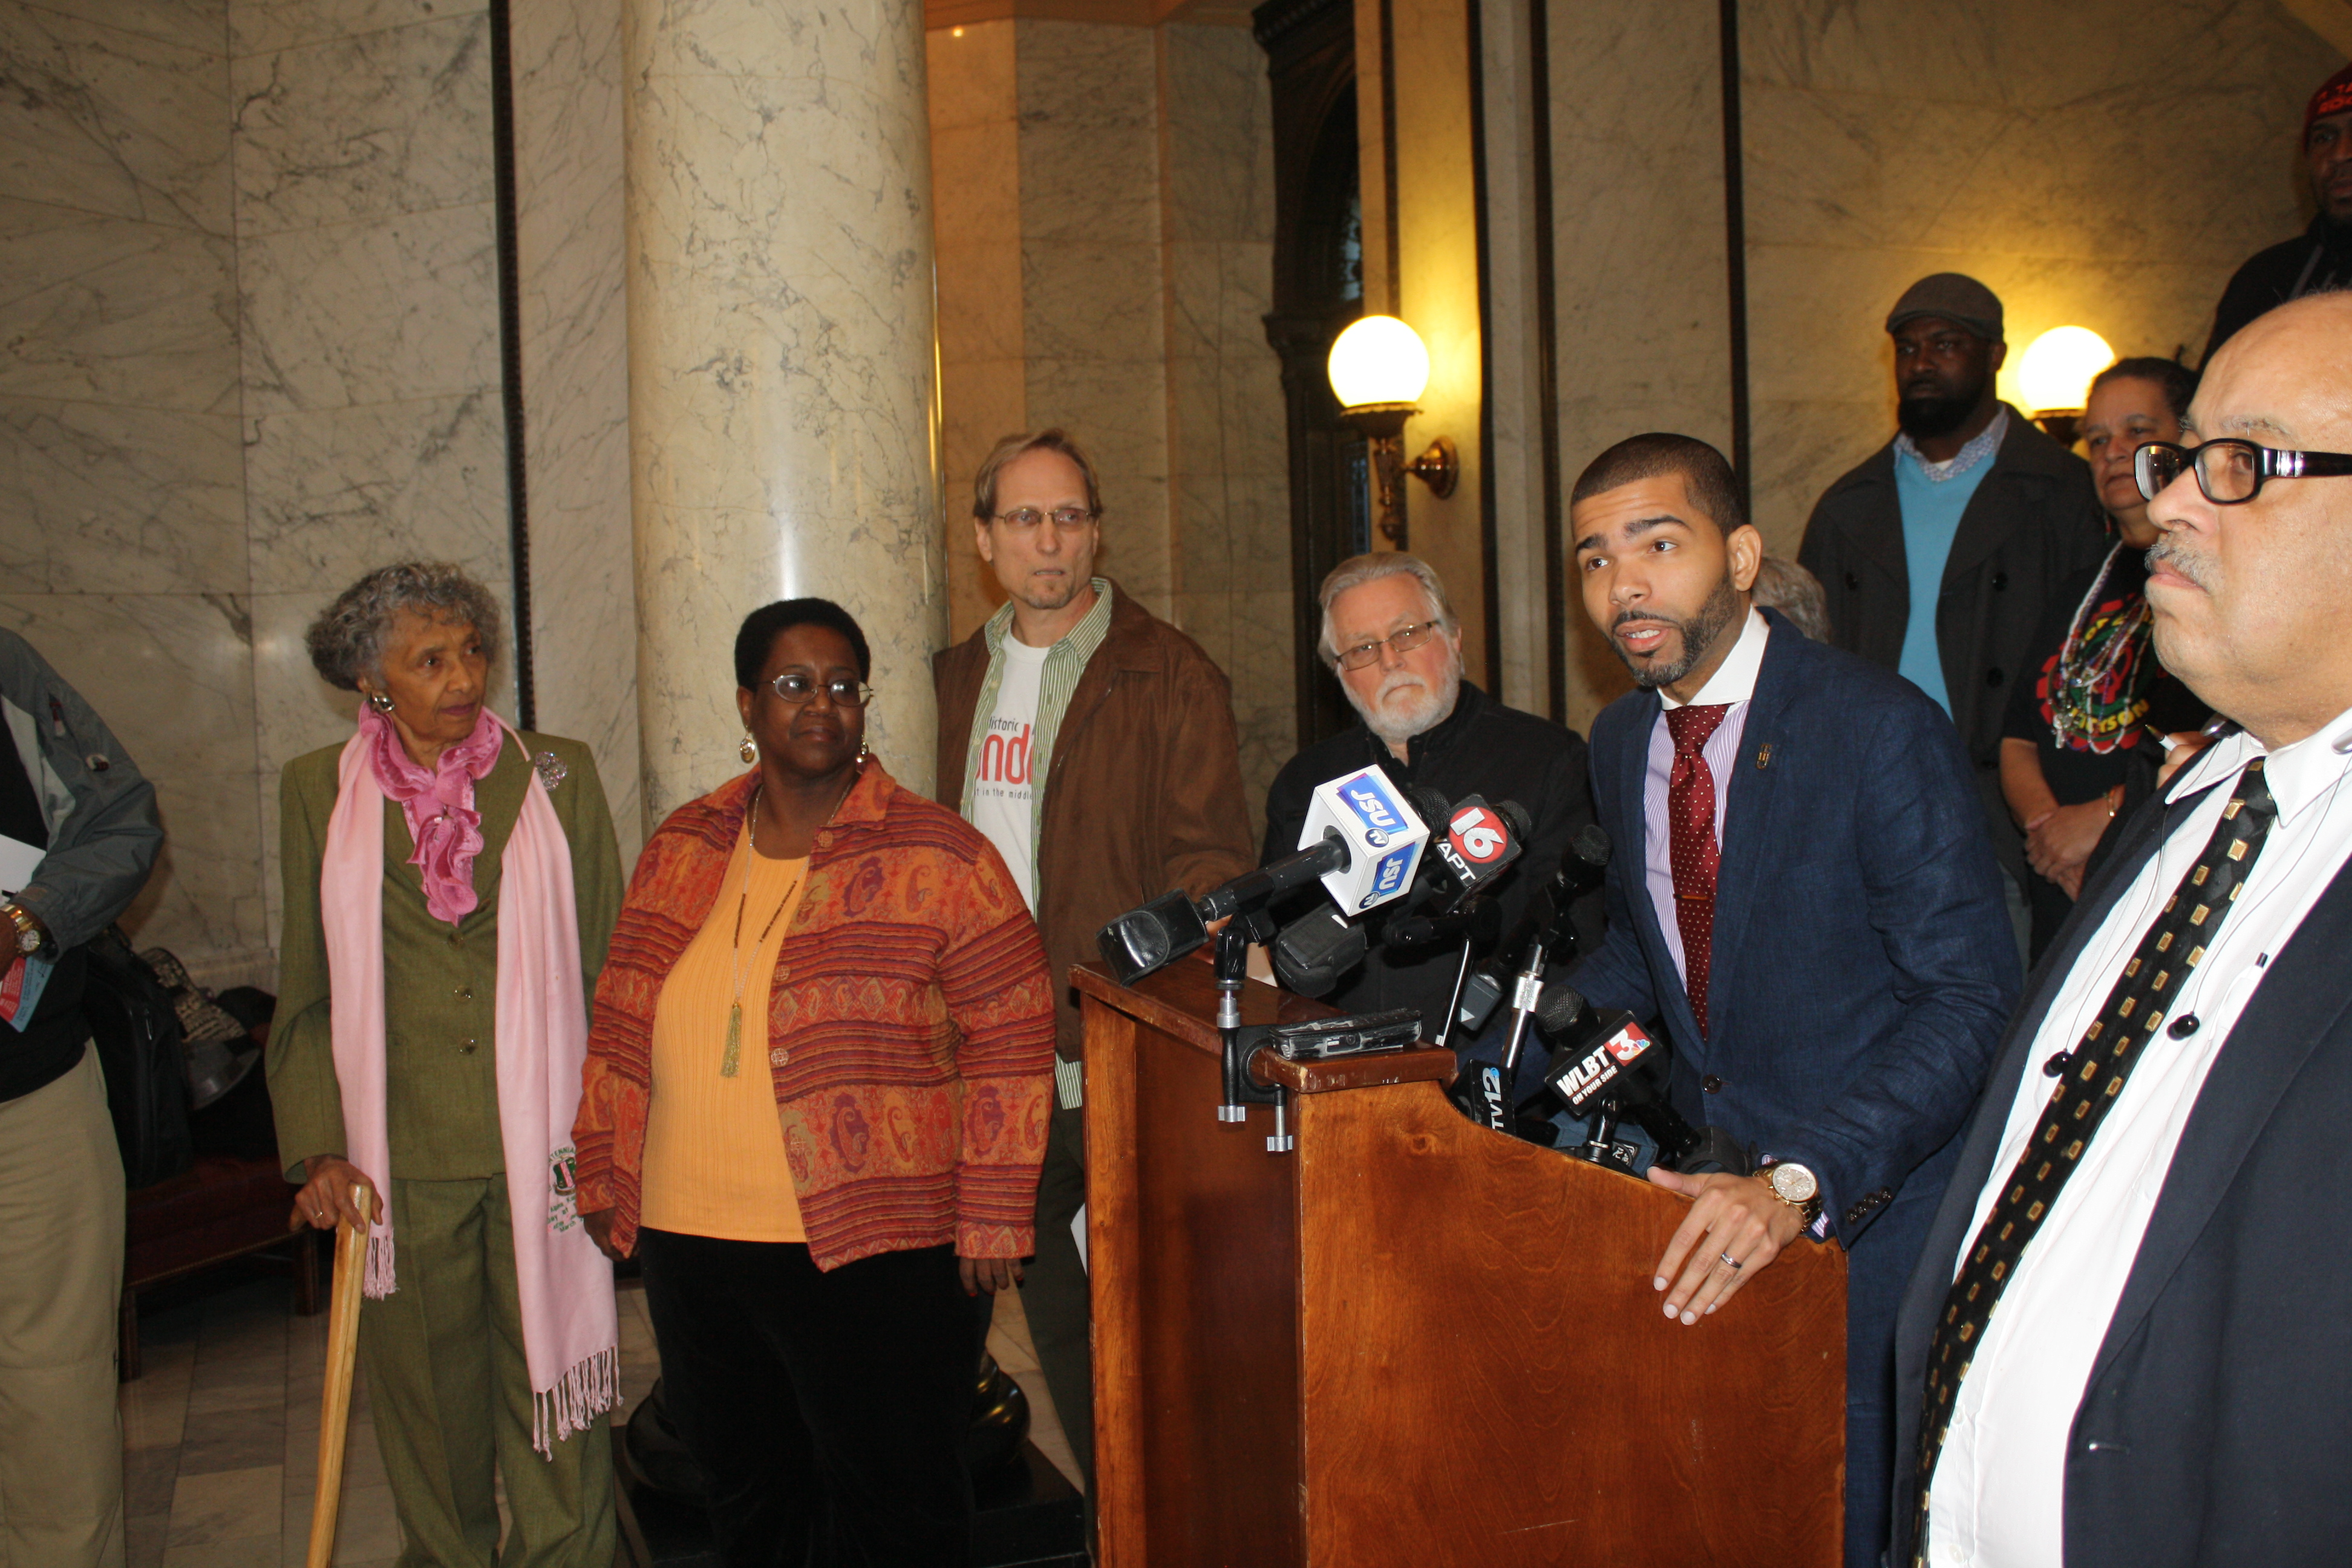 Attorney Chokwe Lumumba Jr. speaks to the media against legislation allowing the state to take control of the Jackson-Medger Wiley Evers International Airport. PHOTO BY SHANDERIA K. POSEY